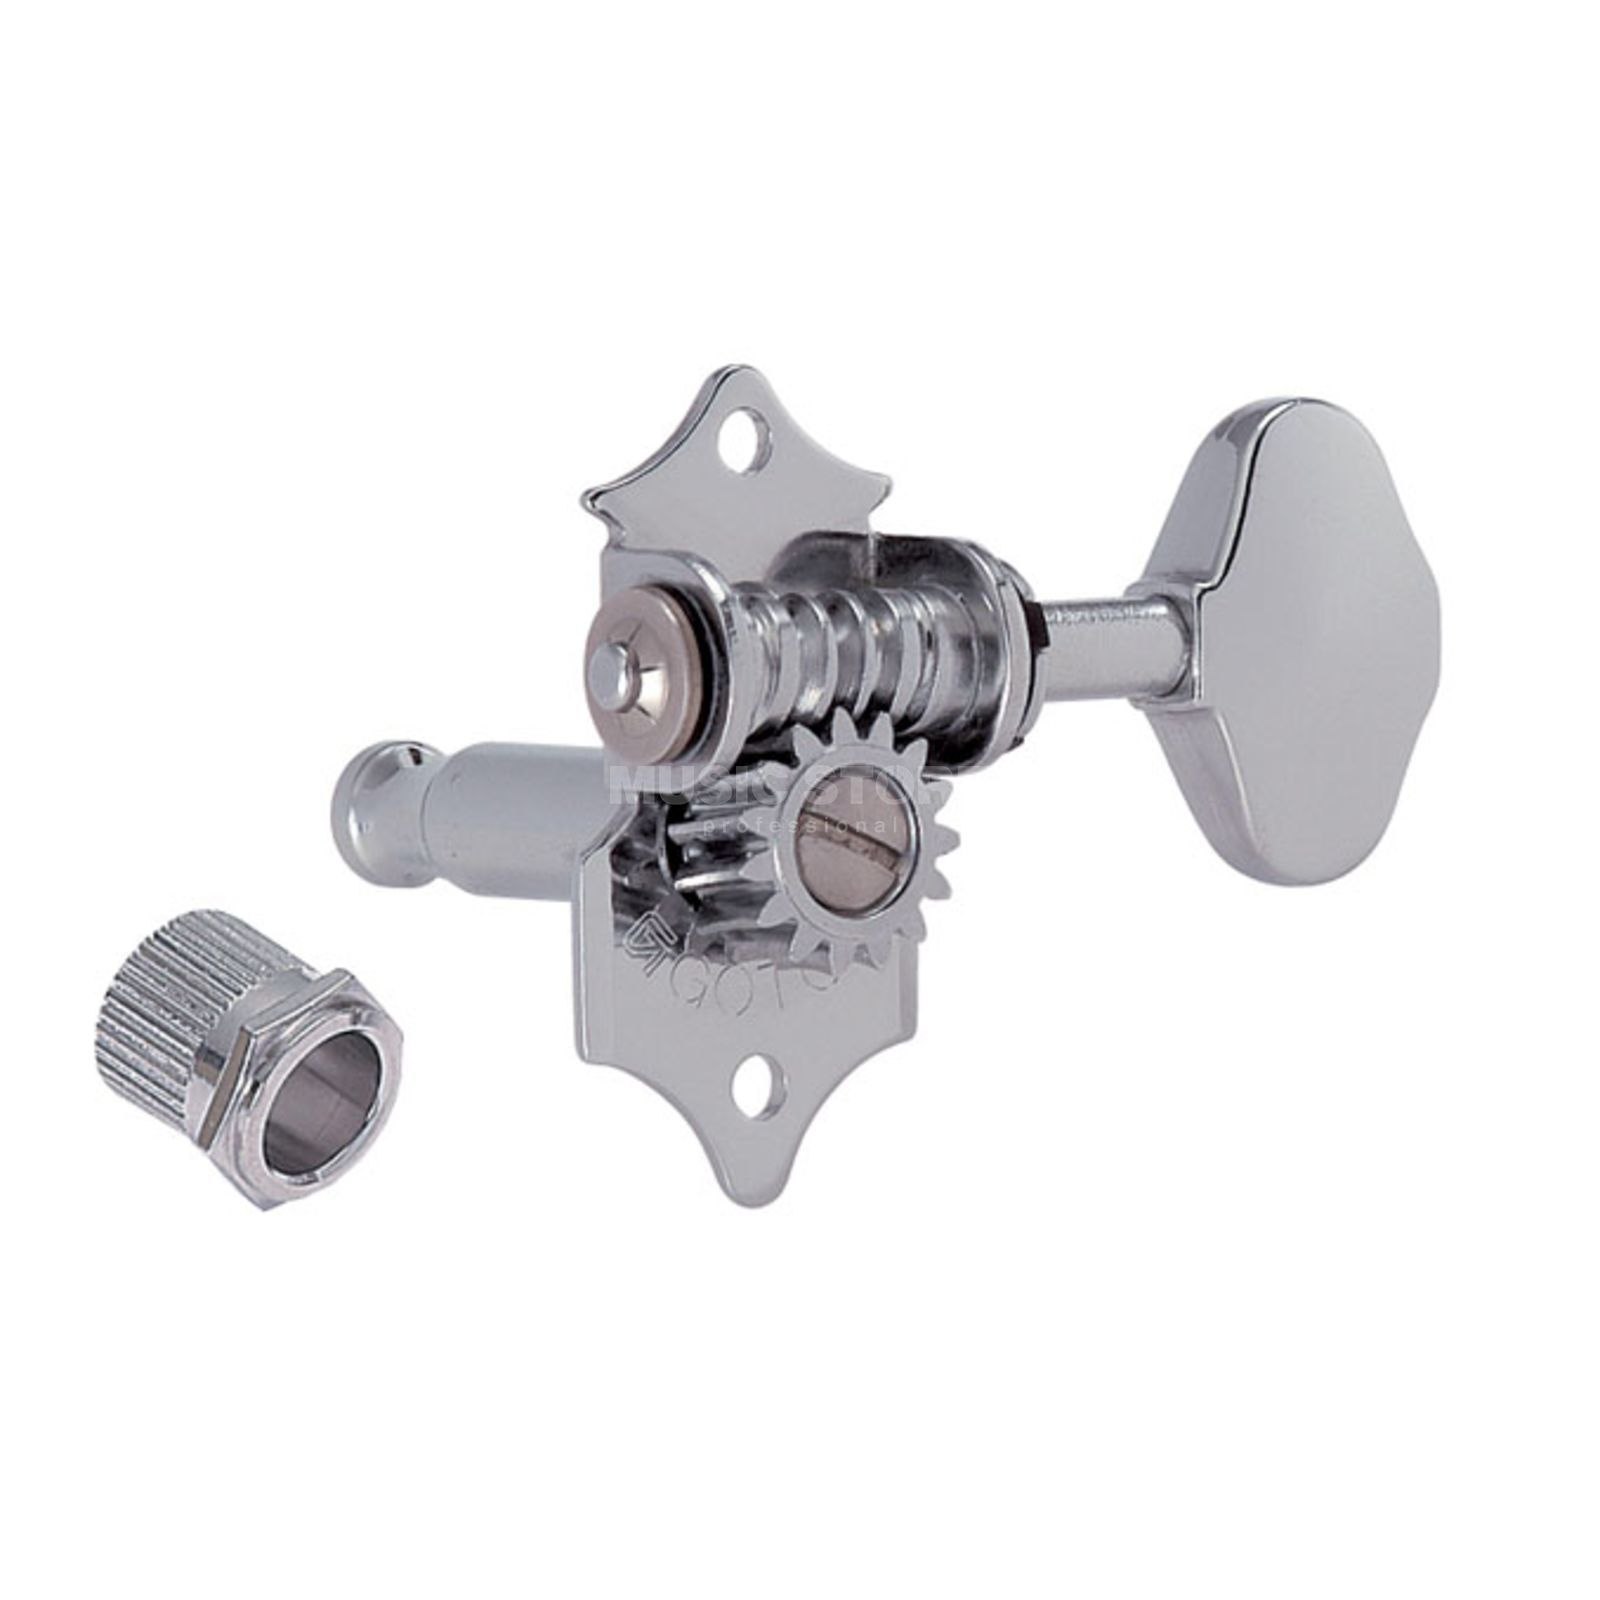 Gotoh SE-780 Mechanik N 3L 3R 06M Button nickel Produktbild